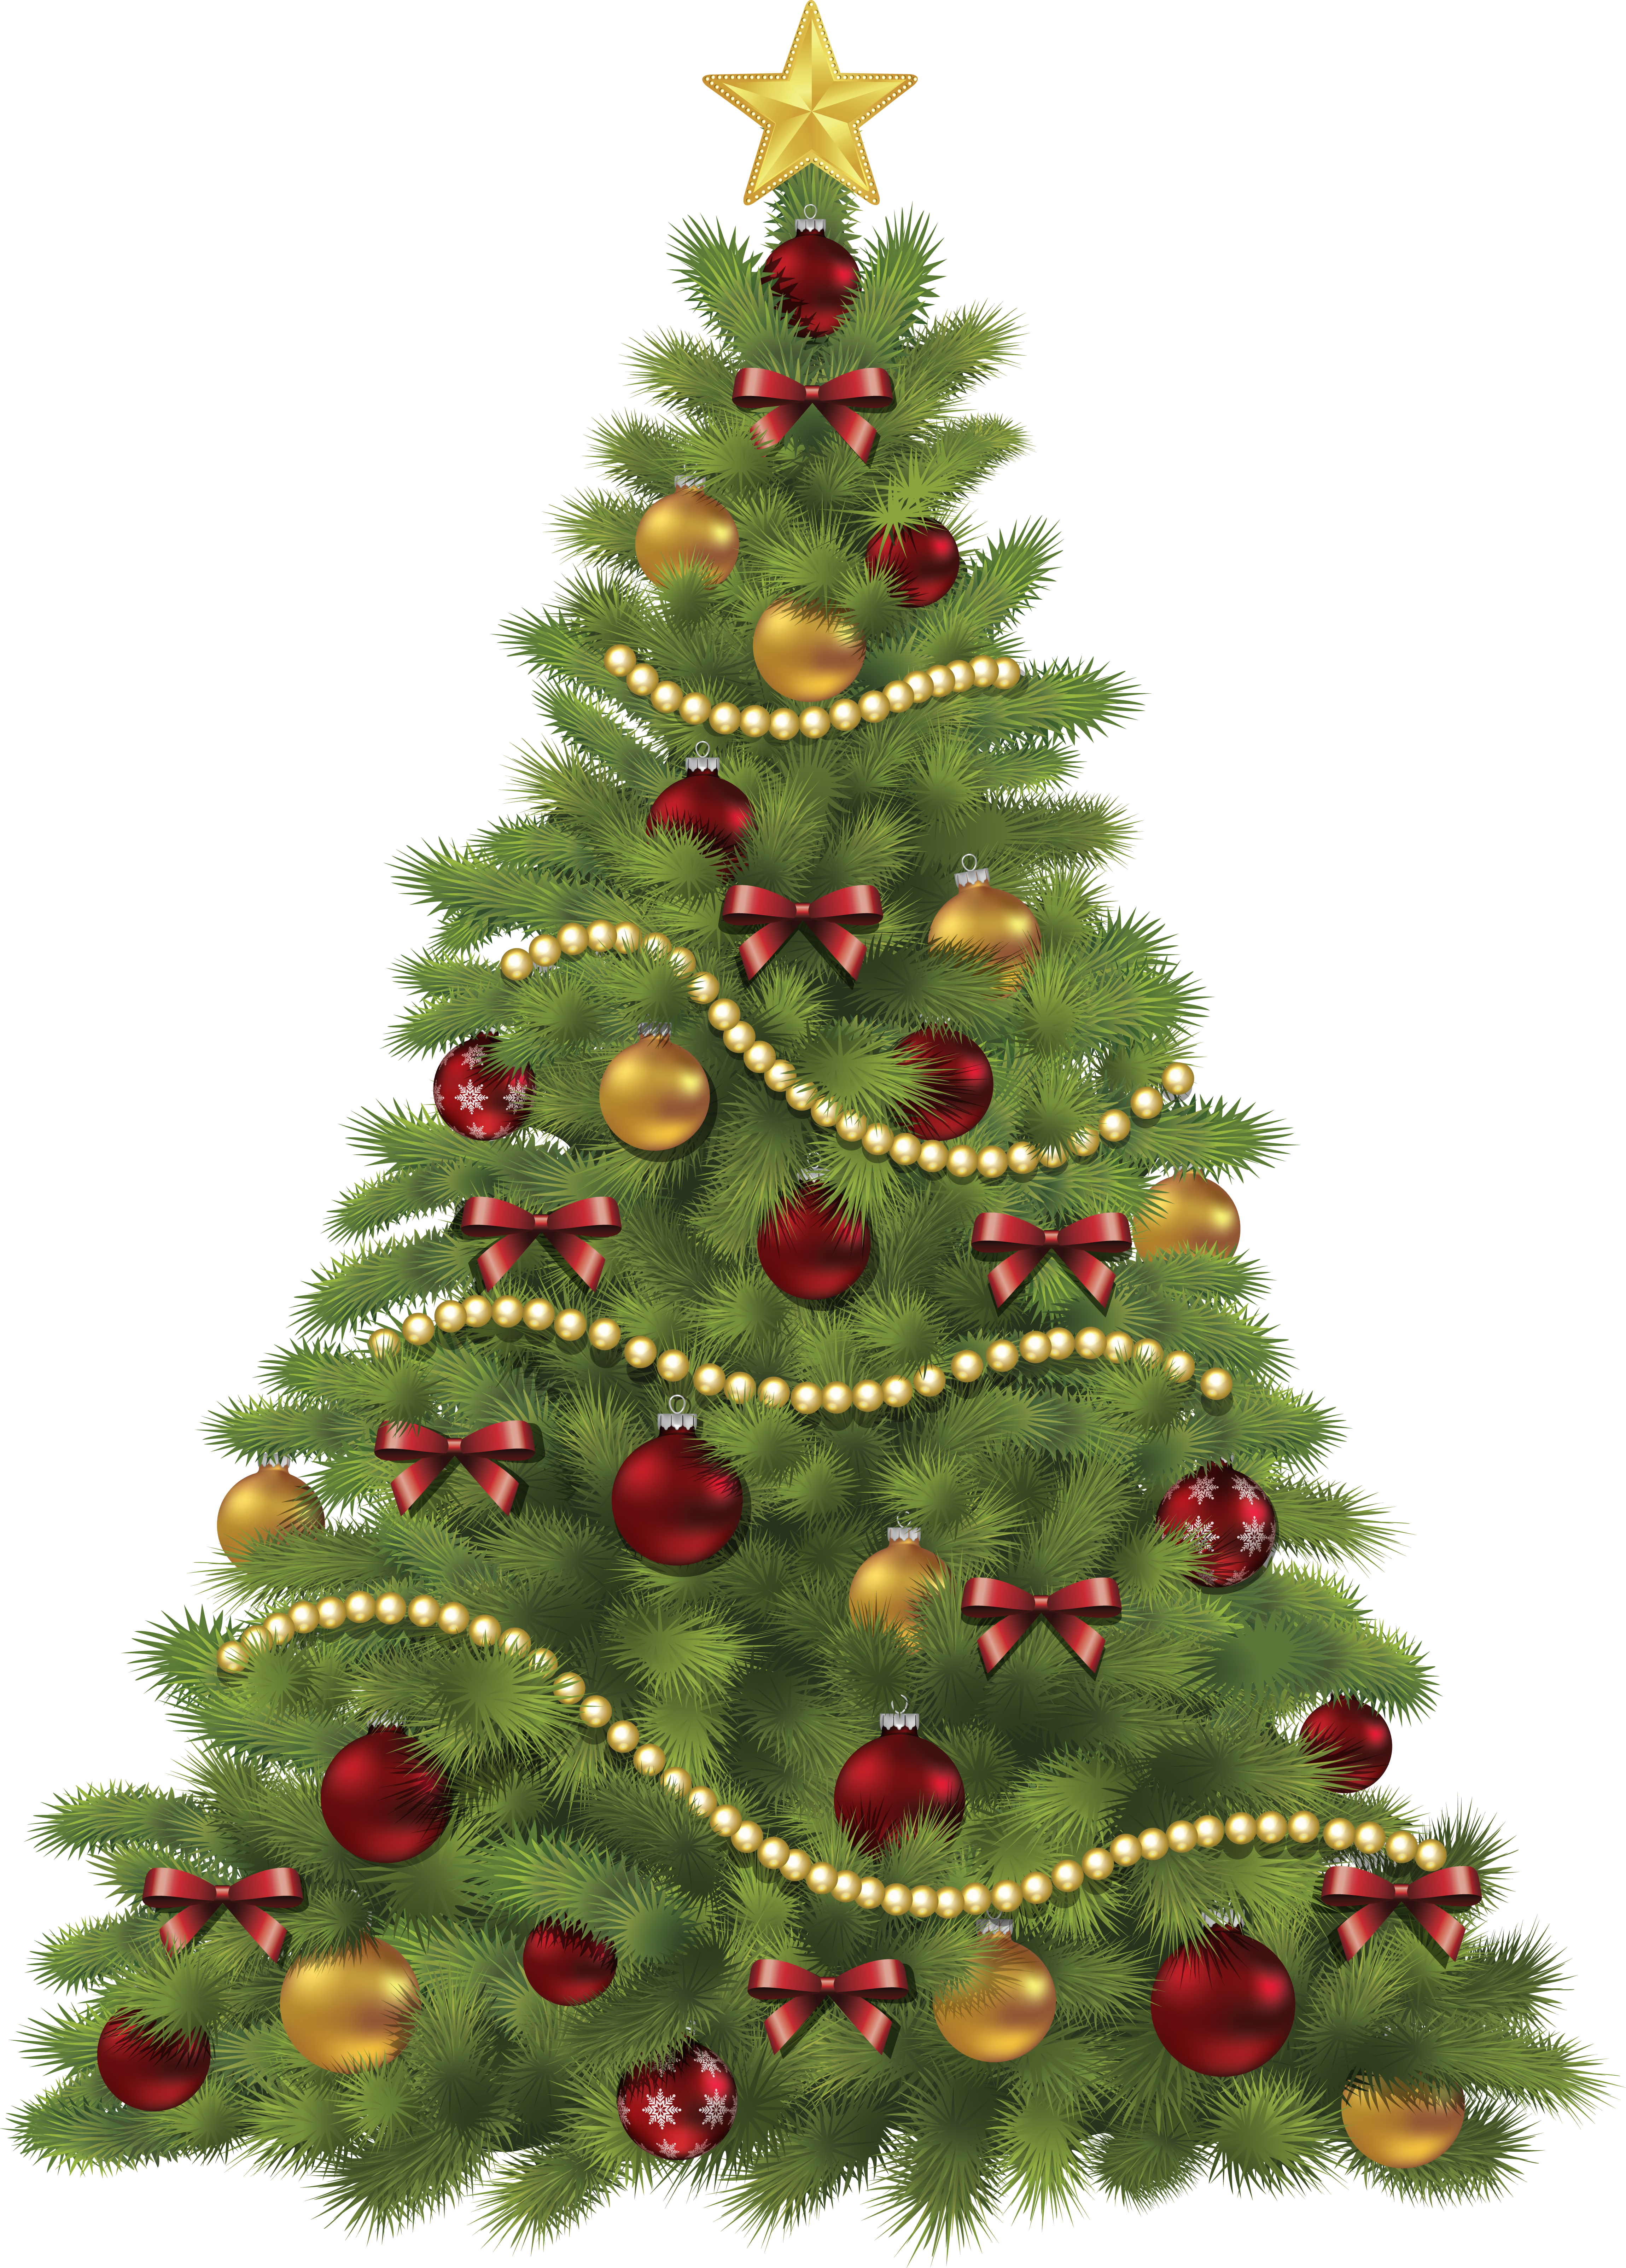 Christmas Tree Svg Free Download.Christmas Tree Png Images Free Download 50698 Png Images